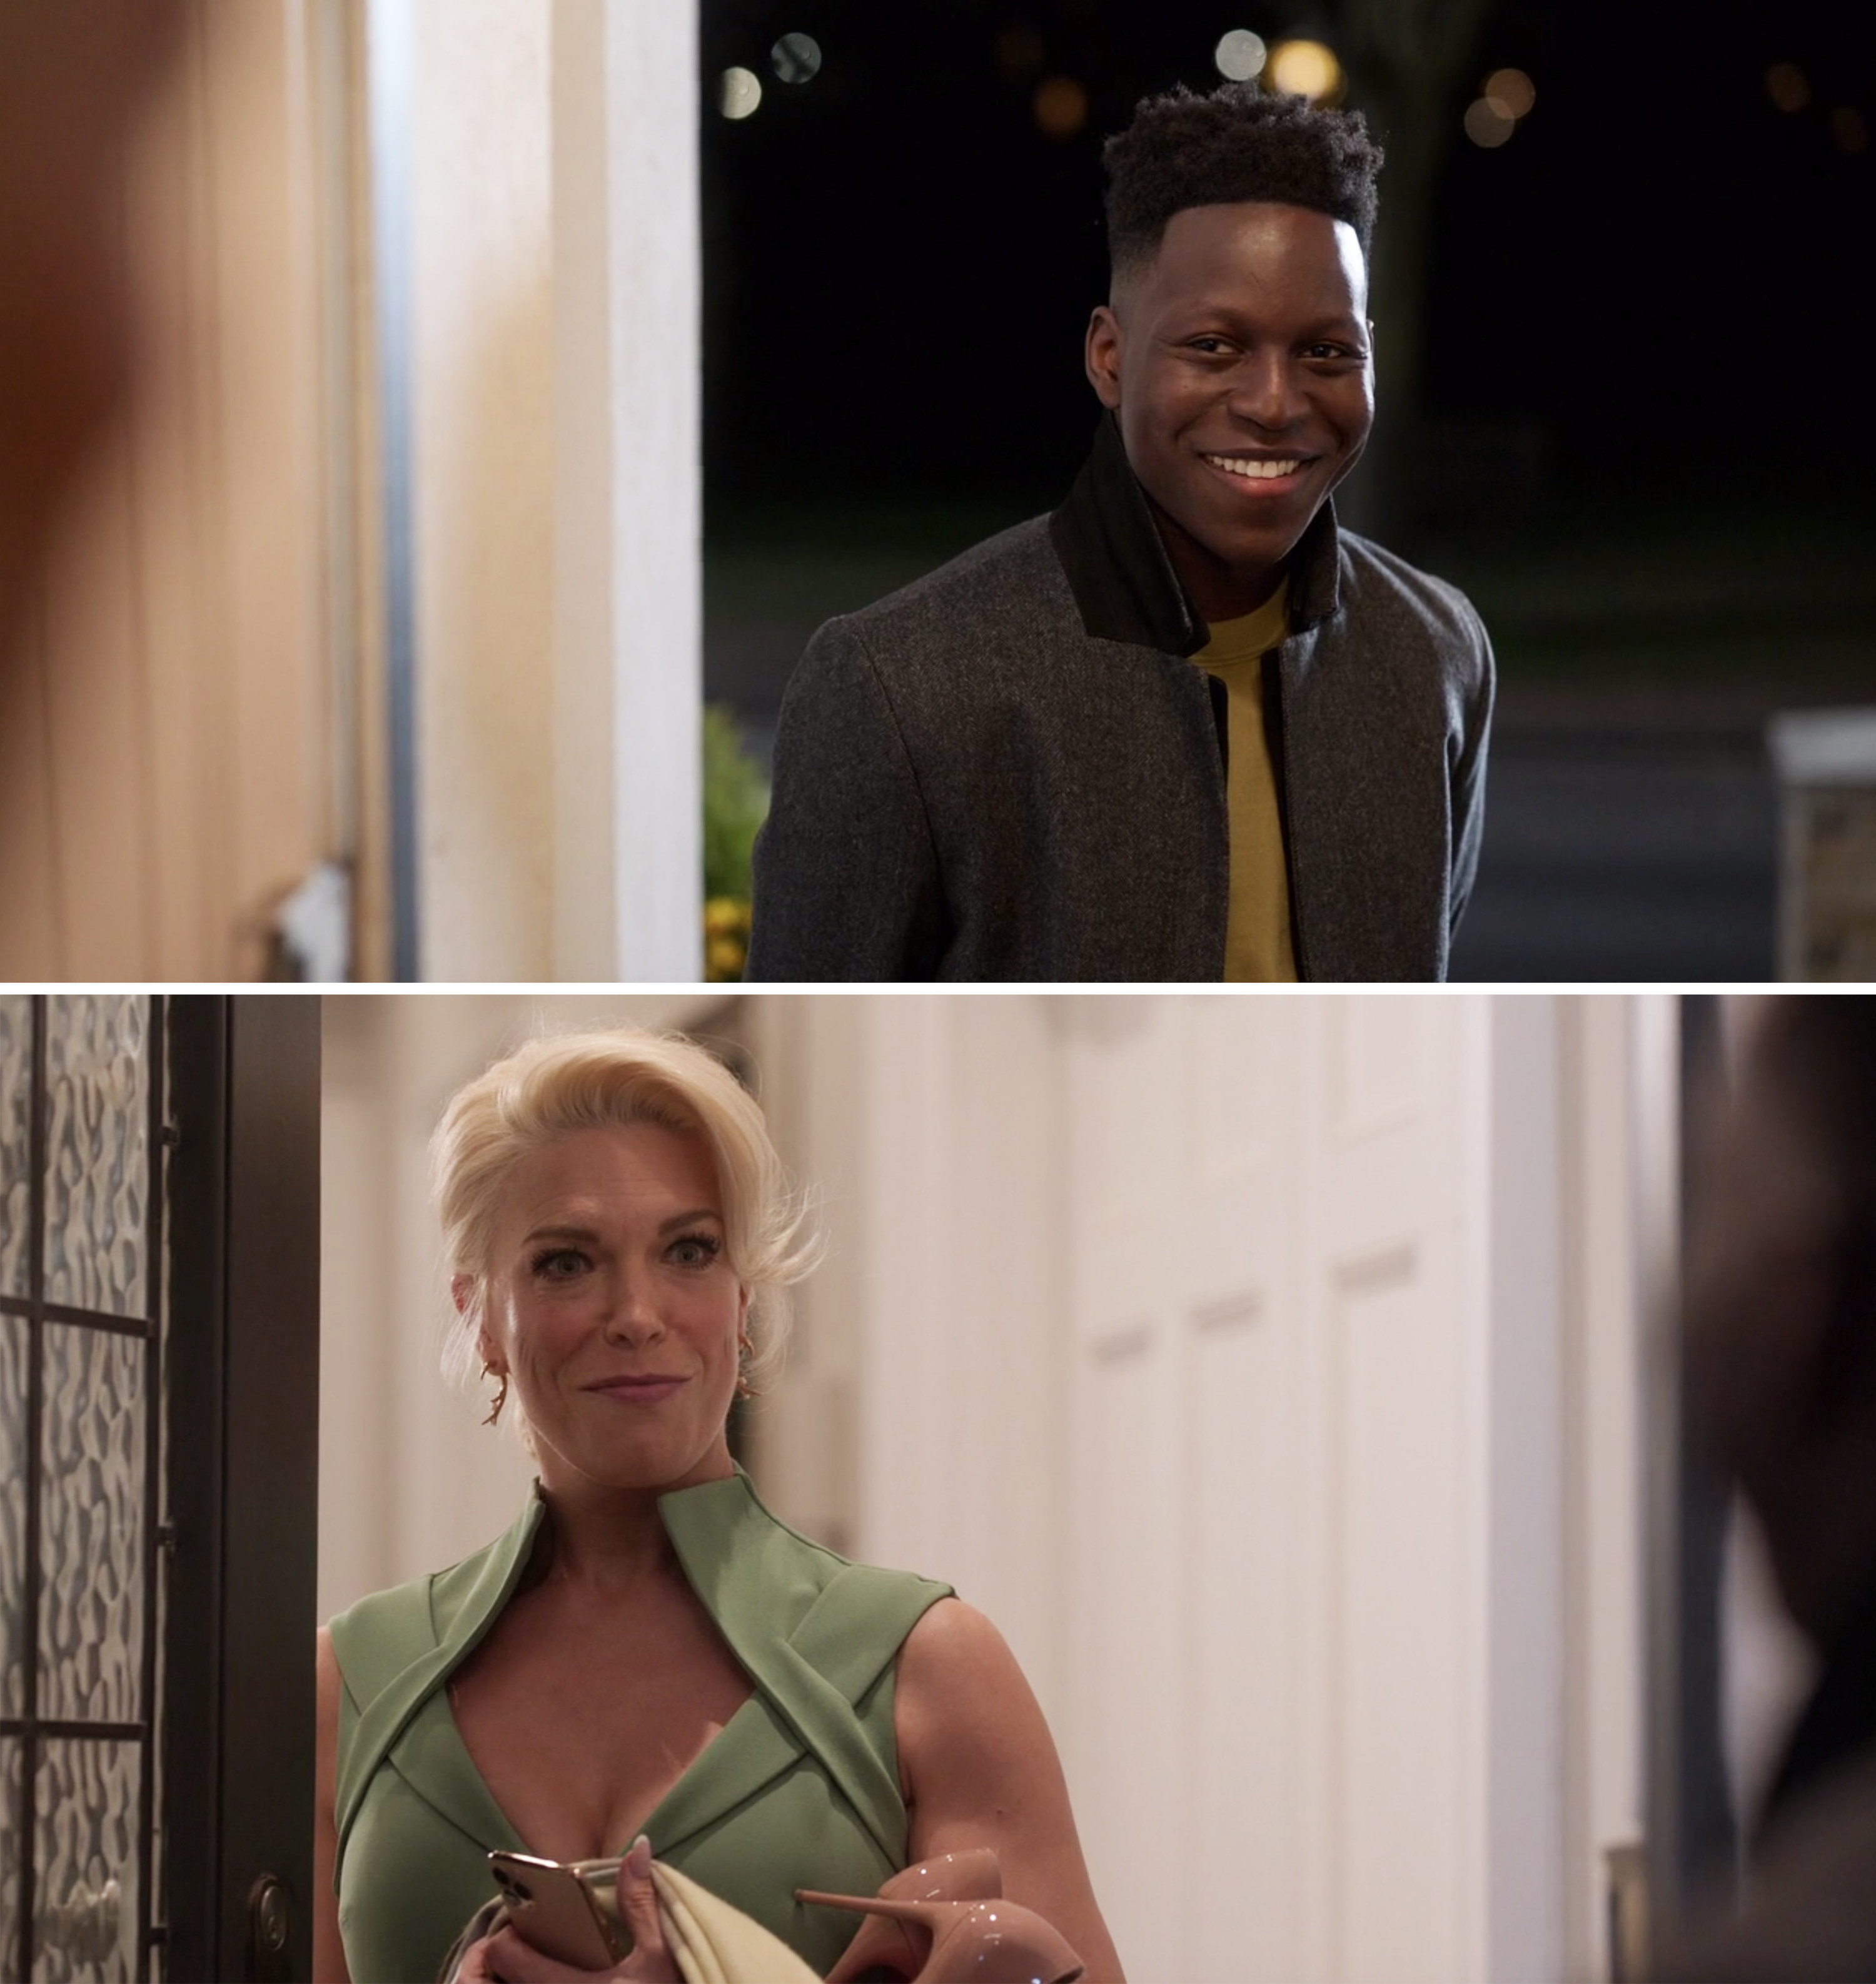 Sam smiling at Rebecca as she opens the door